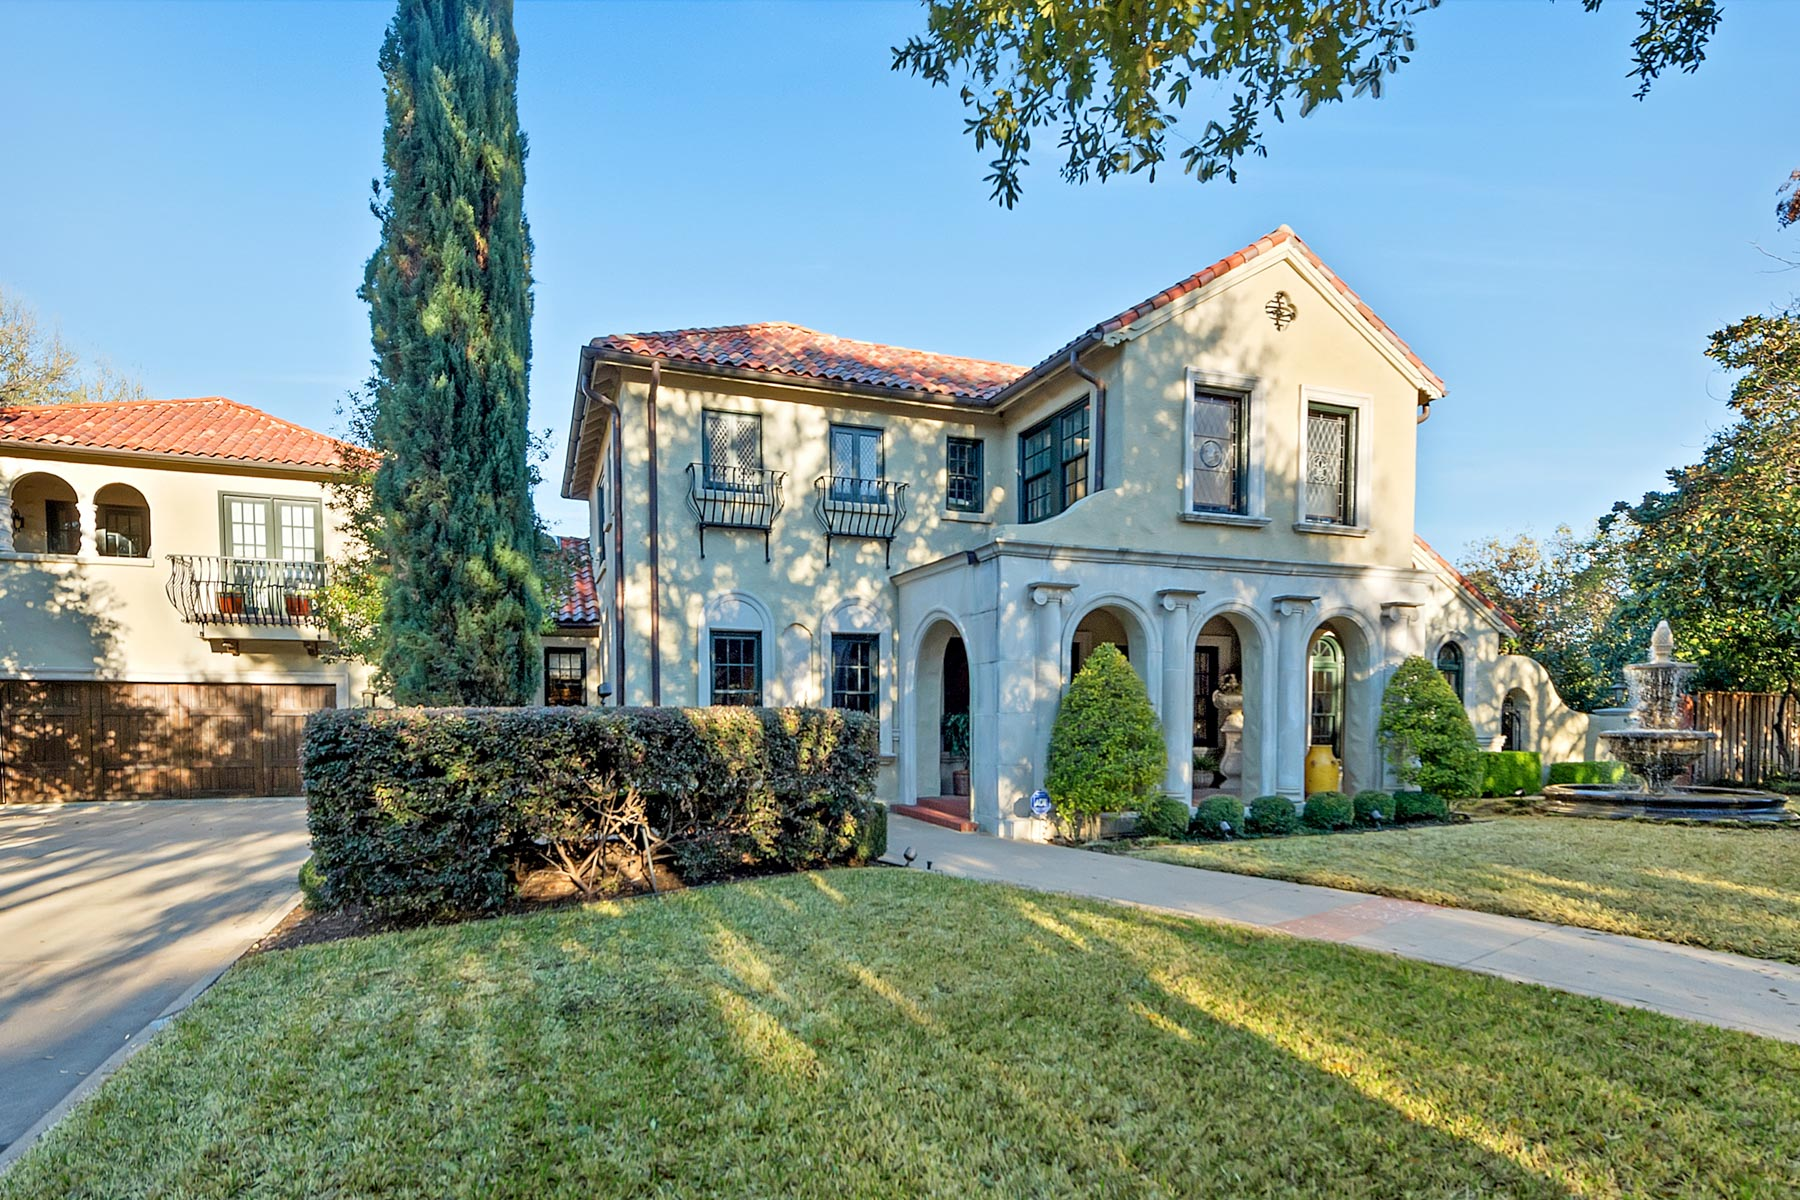 Villa per Vendita alle ore 2443 Medford Court W, Fort Worth Fort Worth, Texas, 76109 Stati Uniti